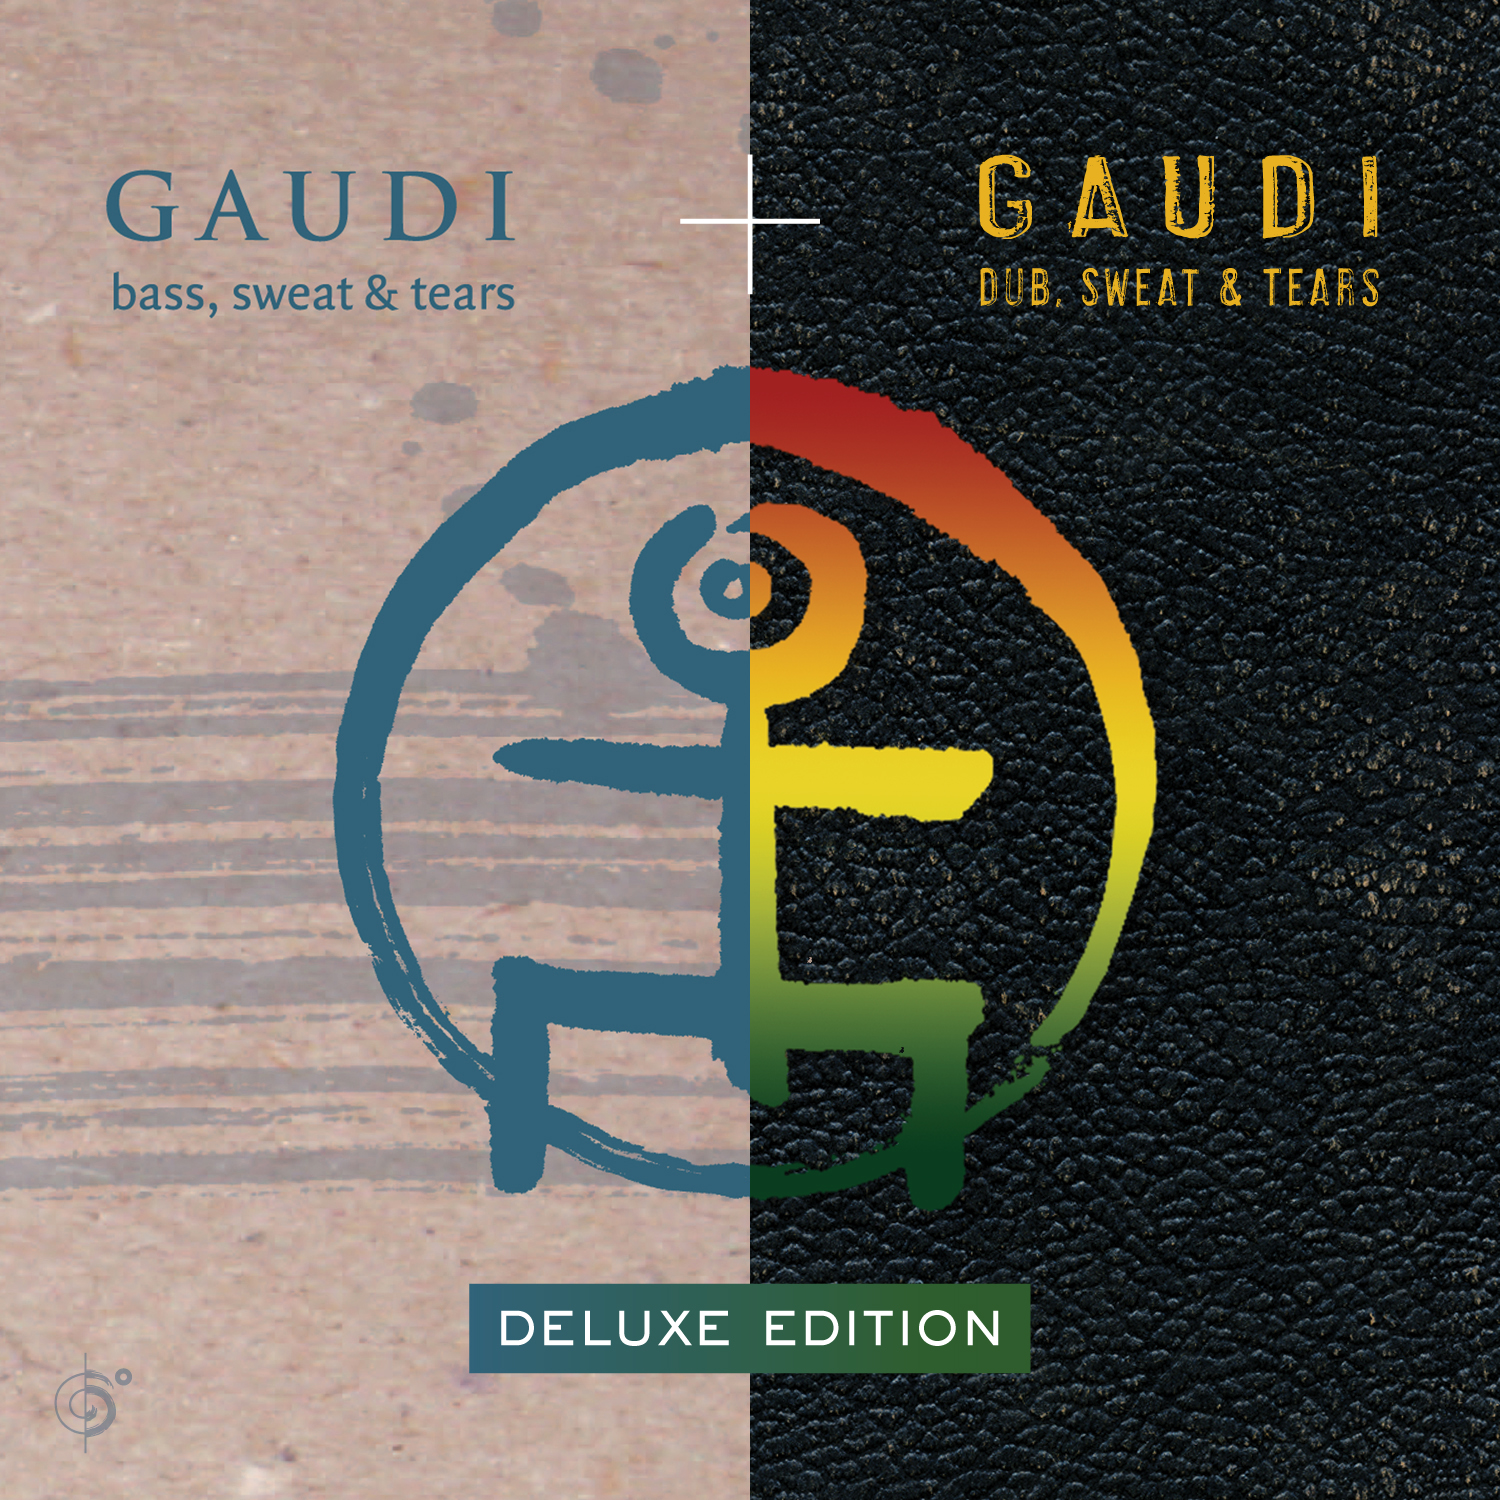 GAUDI – Bass, Sweat & Tears / Dub, Sweat & Tears  (Deluxe Edition)